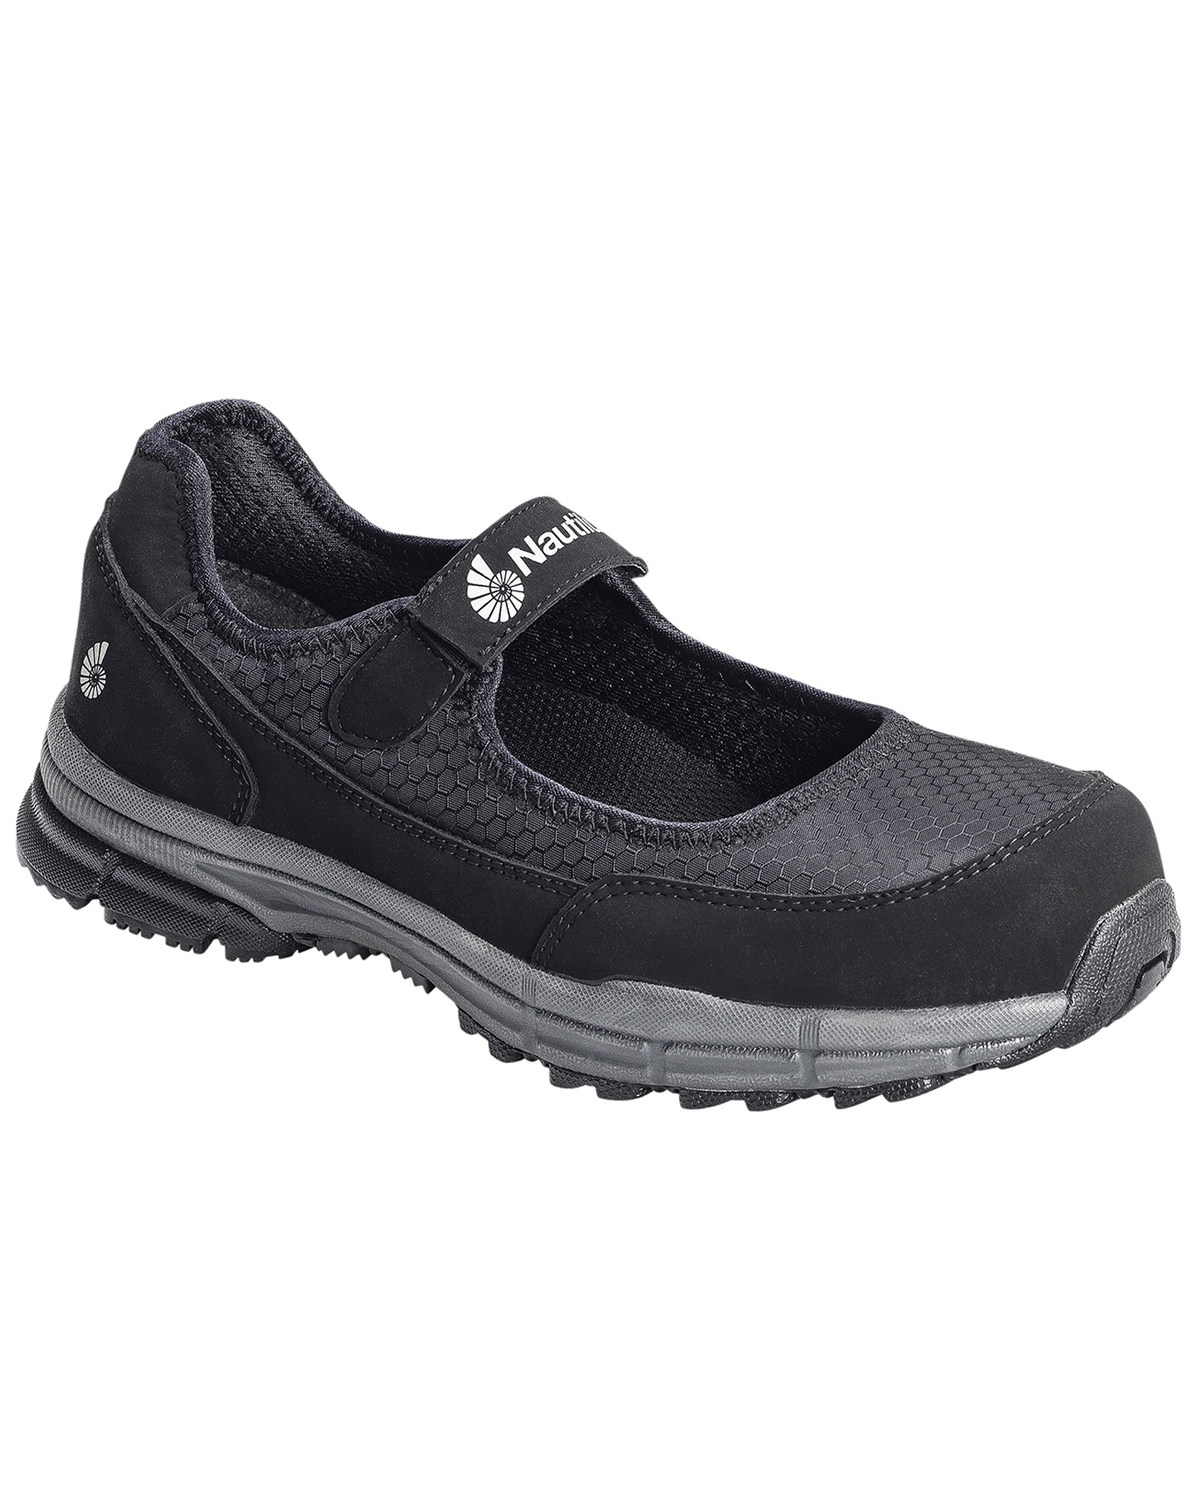 f71980092 Zoomed Image Nautilus Women's Steel Toe ESD Velcro Safety Shoes, Black, ...